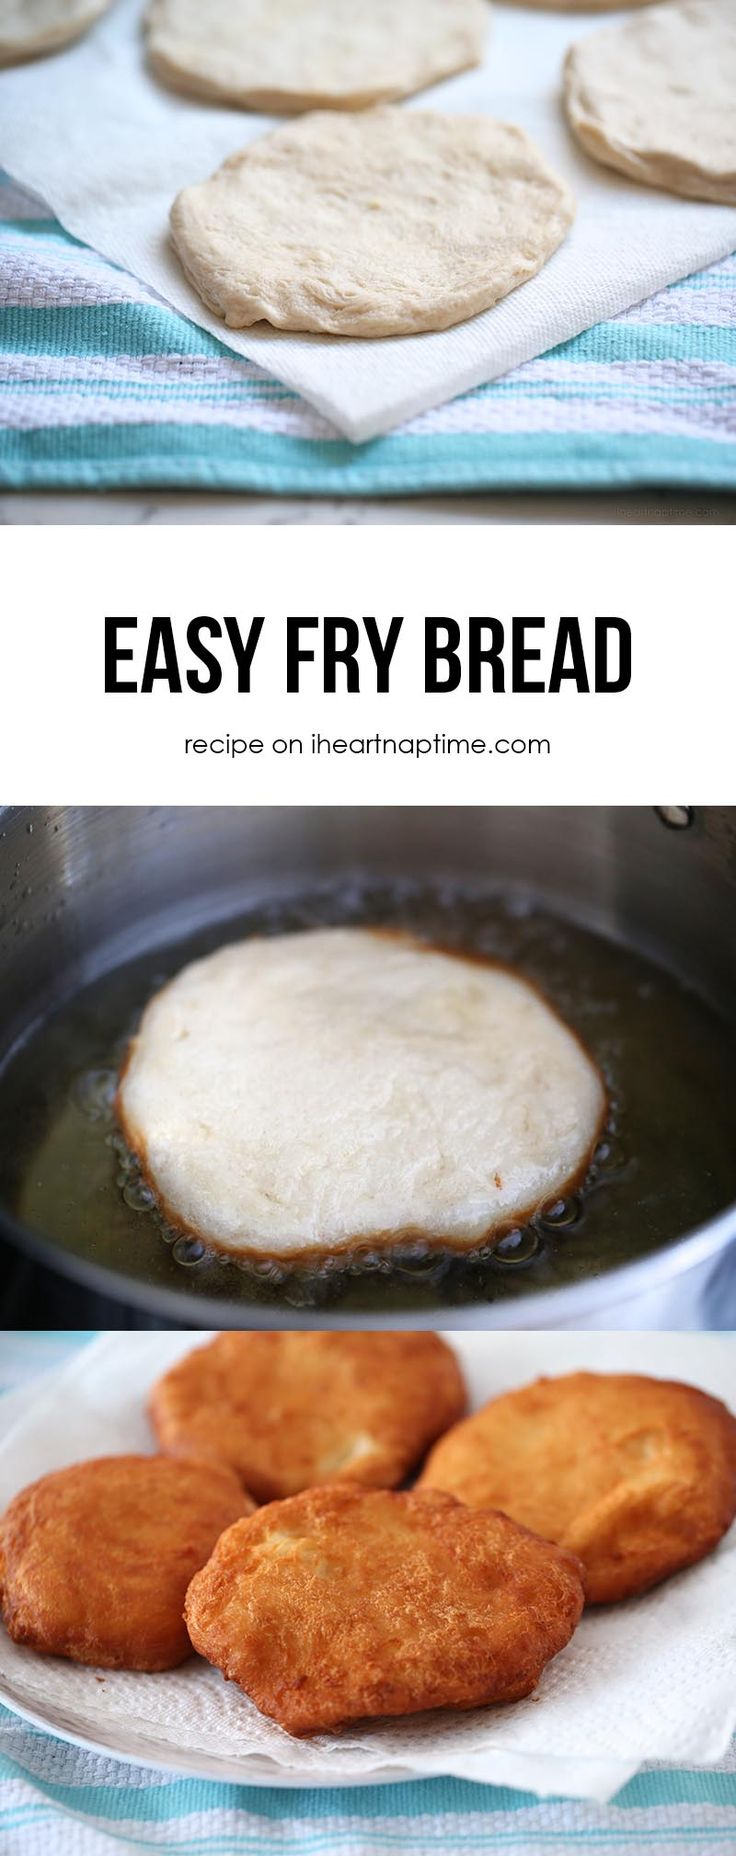 Easy fry bread.. add taco toppings; breakfast mix; powdered sugar on top.. ideas could go on!